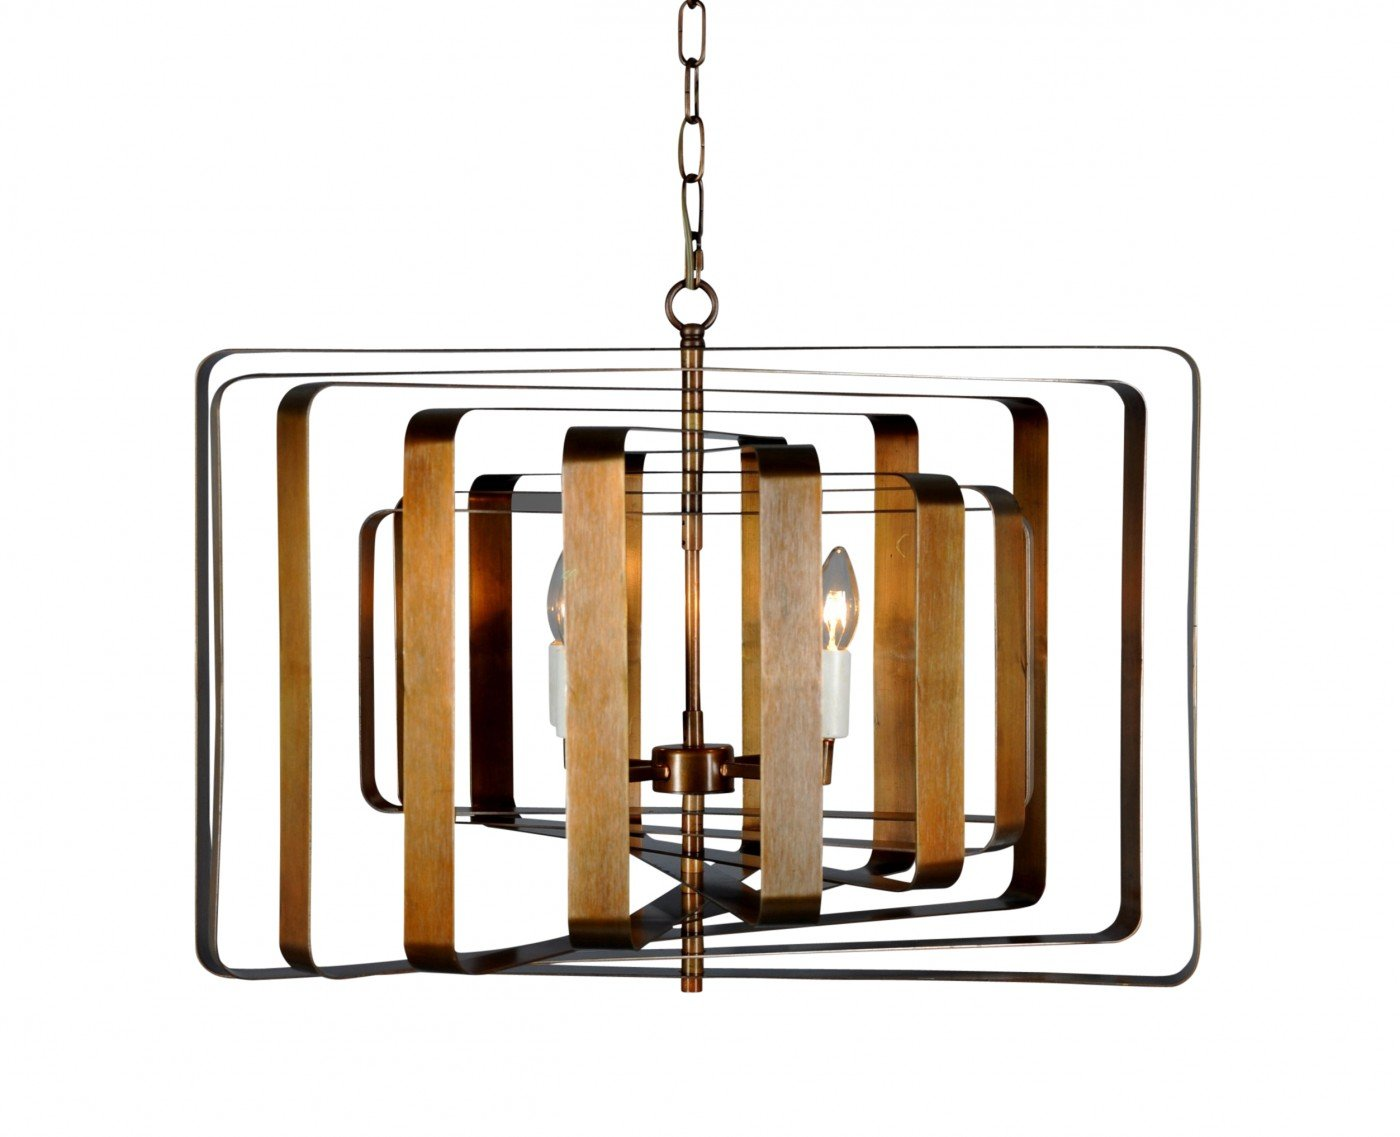 Bronte Pendant Light Brass by Emac & Lawton, a Pendant Lighting for sale on Style Sourcebook